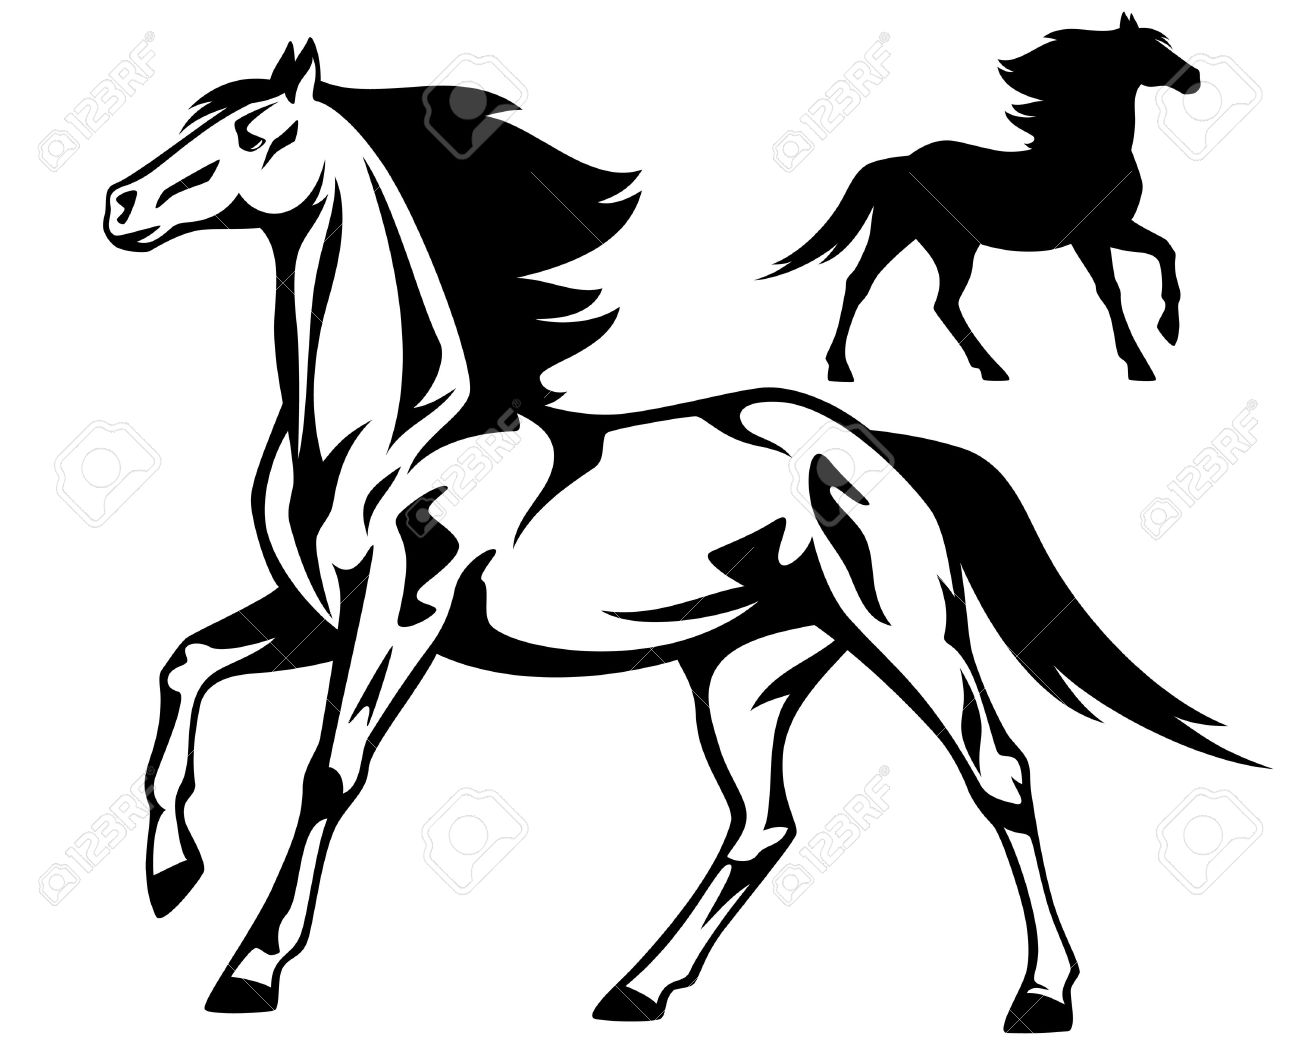 1300x1047 Running Horse Black And White Vector Outline And Silhouette